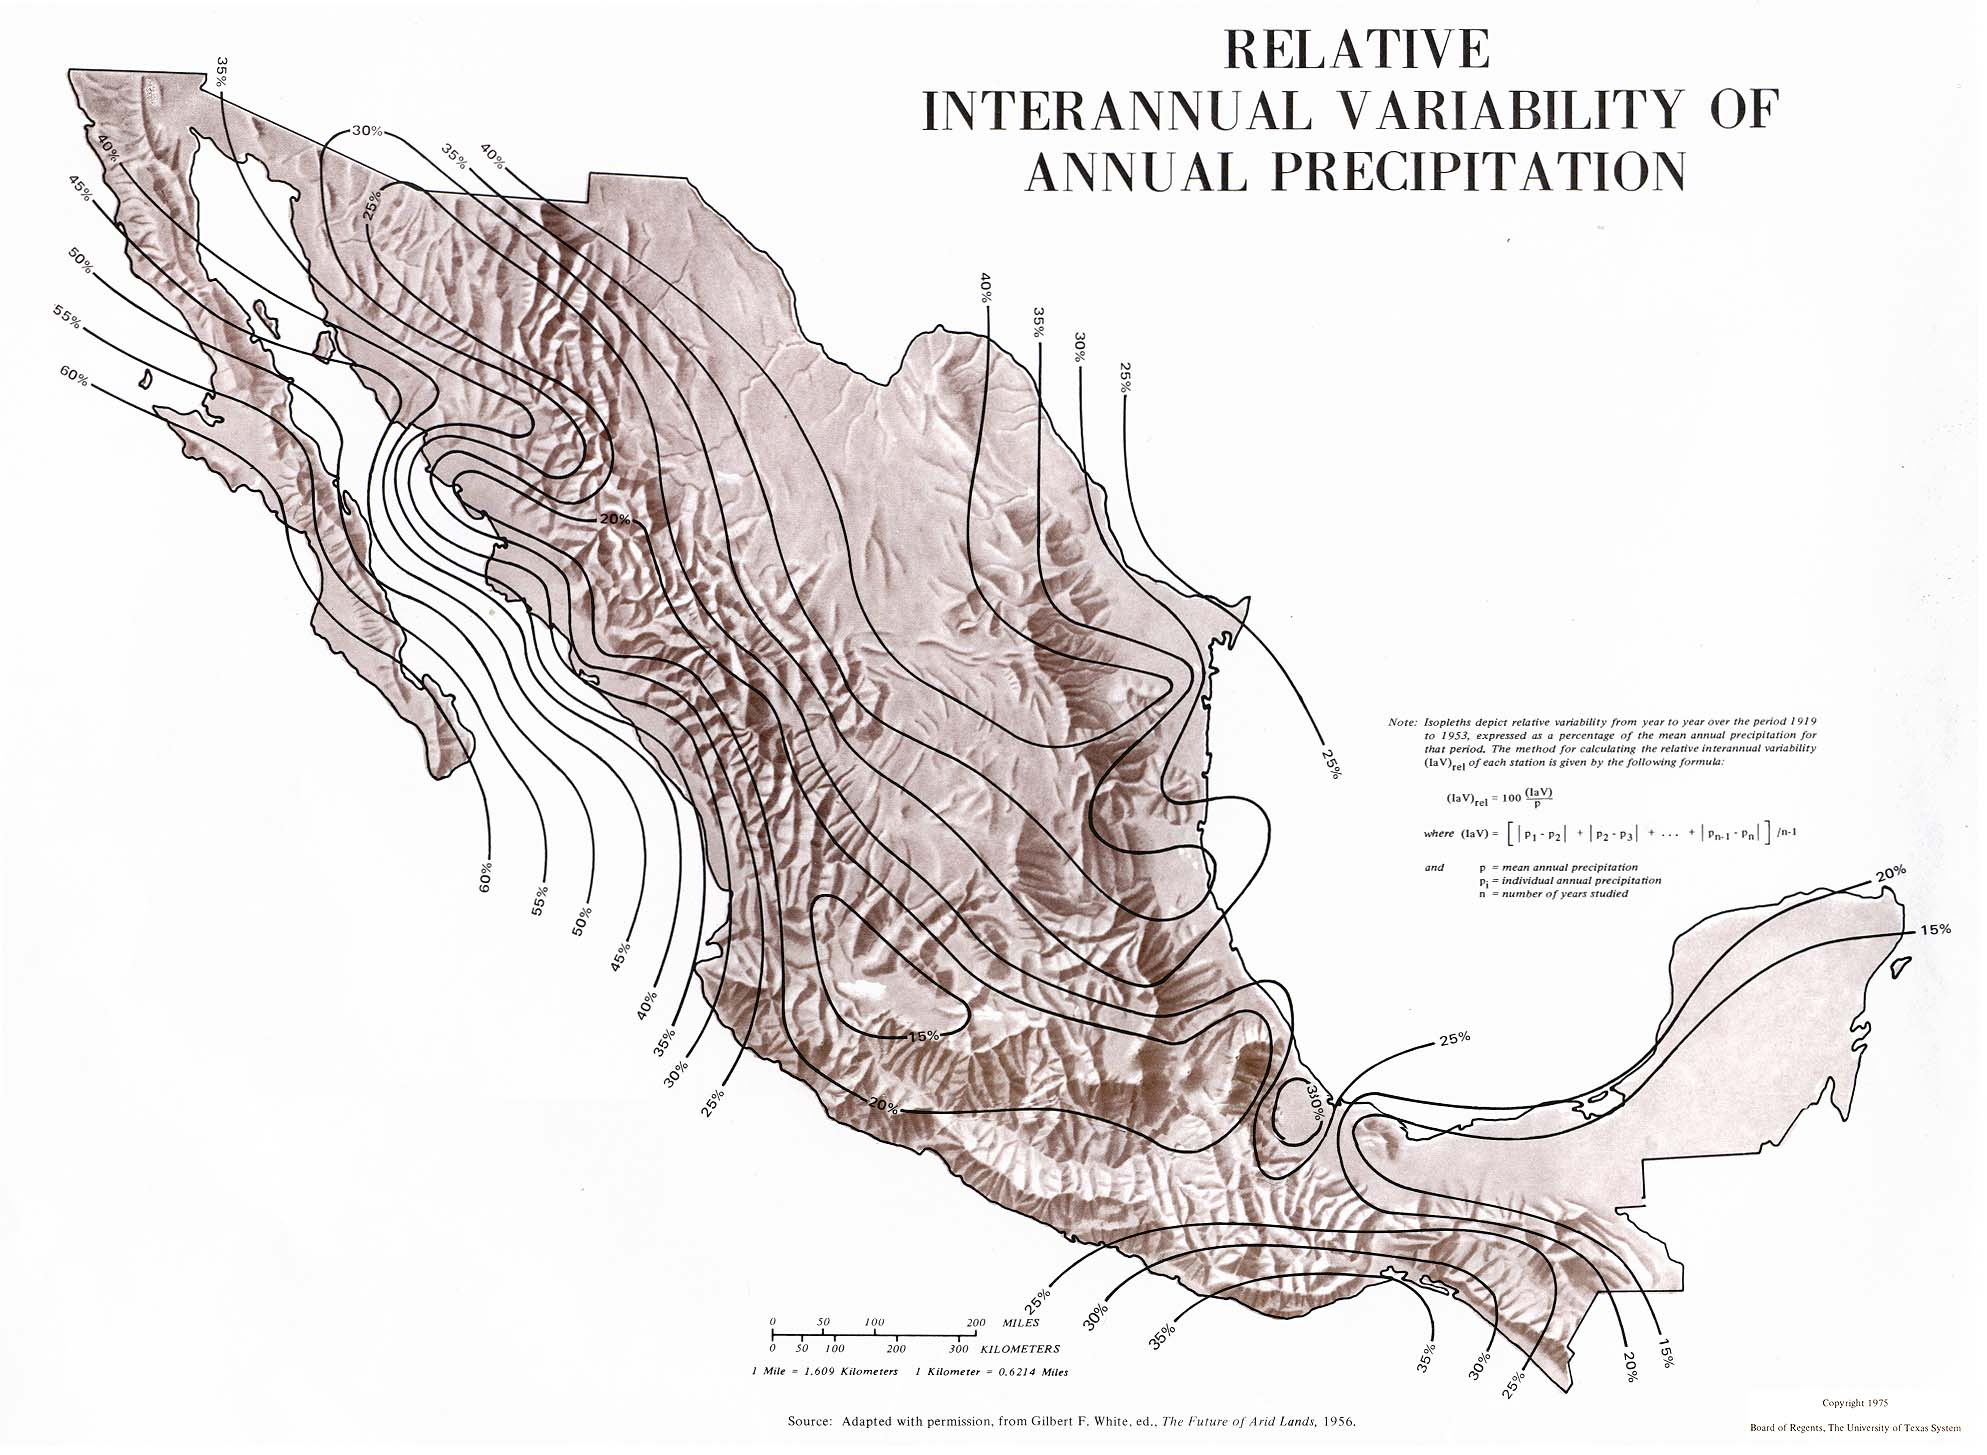 Relative Interannual Variability of Annual Precipitation Map, Mexico